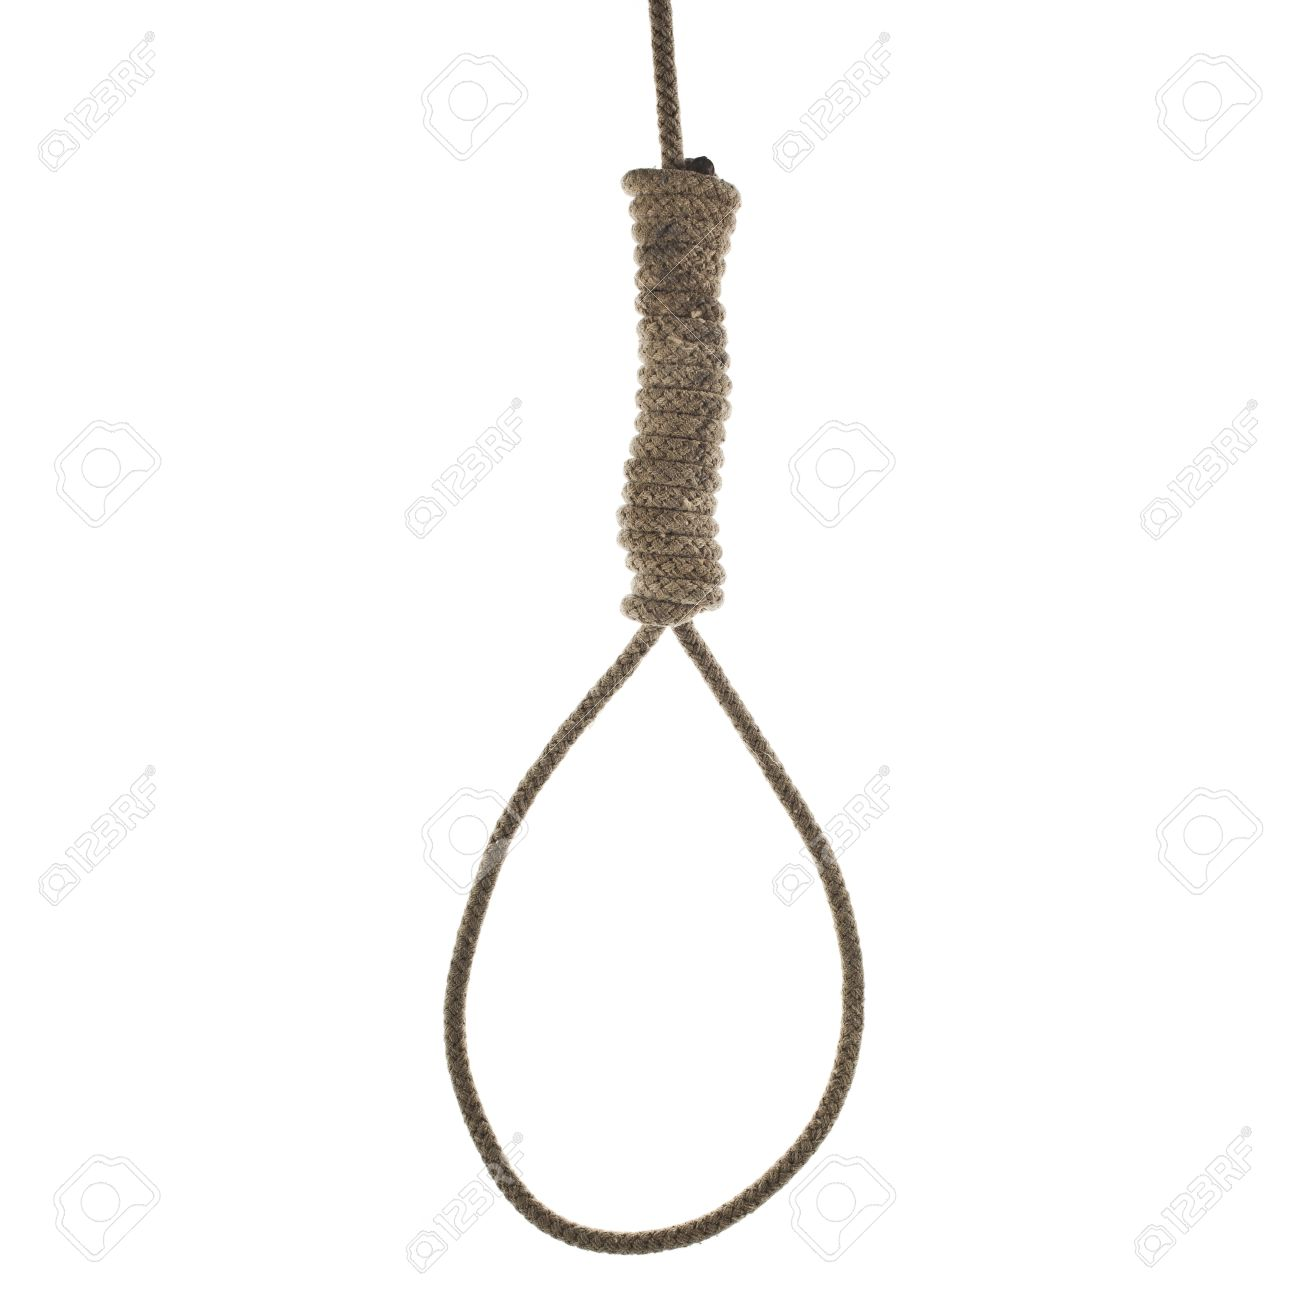 Hanging Noose Of Rope Isolated On White Background Stock Photo.